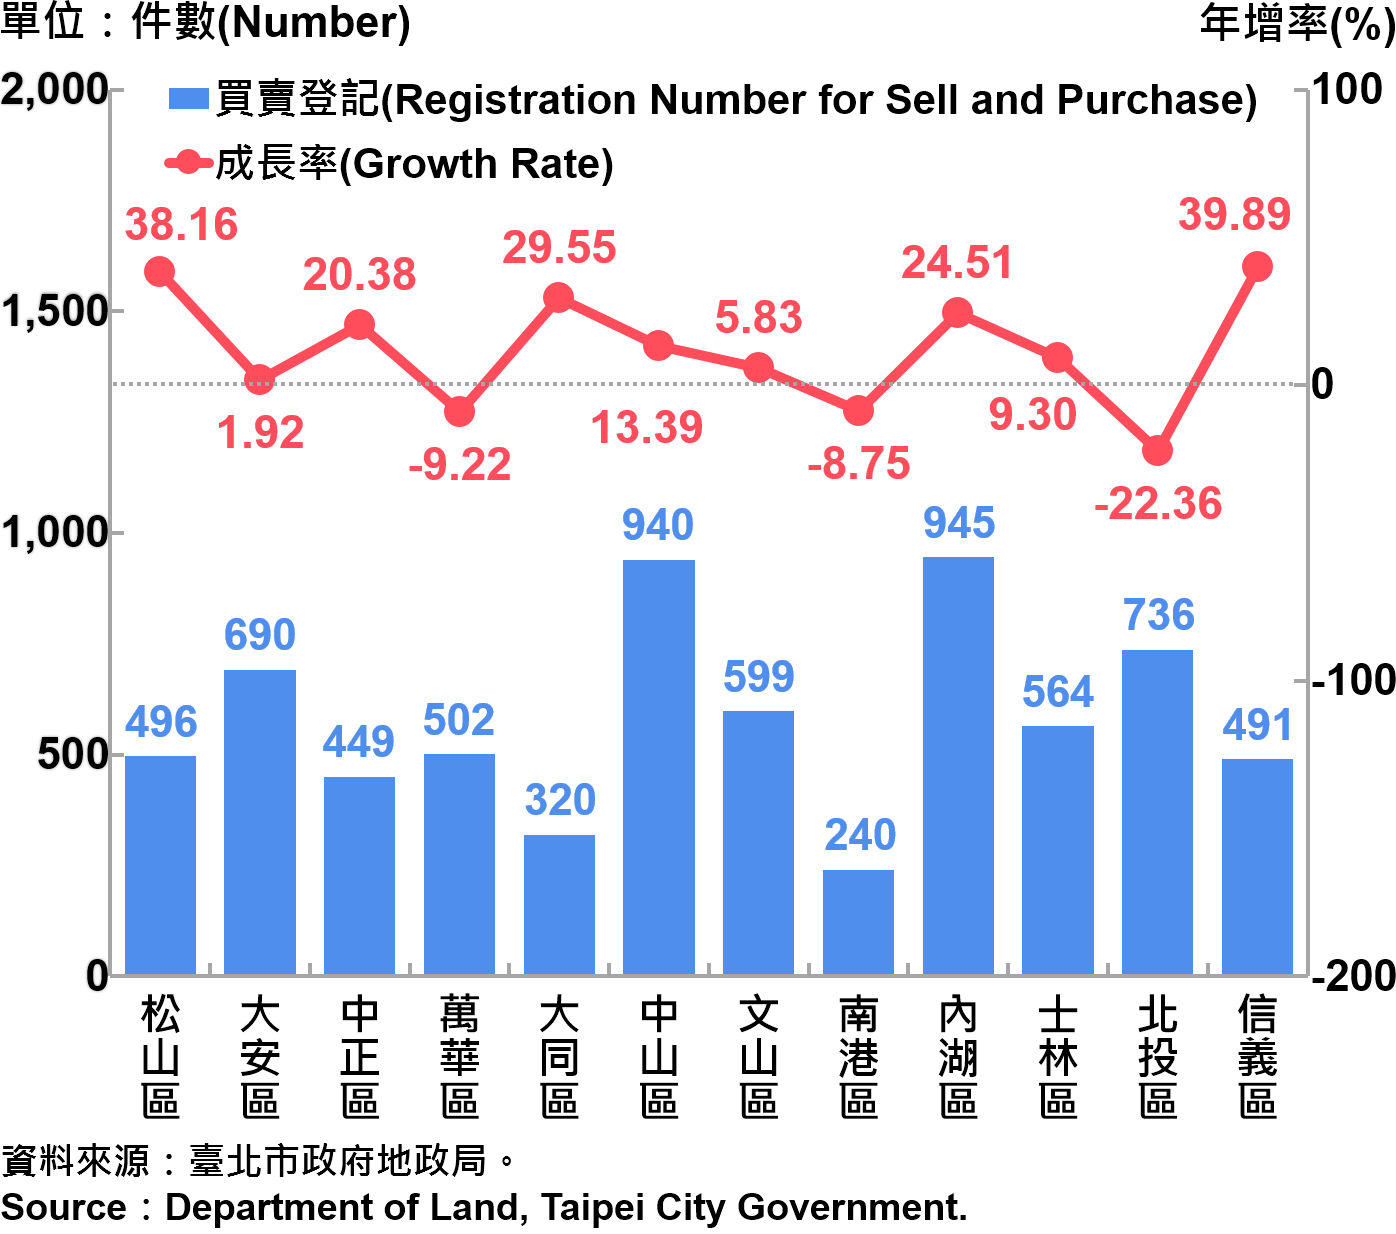 臺北市不動產買賣登記統計—依行政區分—2019Q2 Statistics for Trade in Real Estate Registration by Distinct—2019Q2